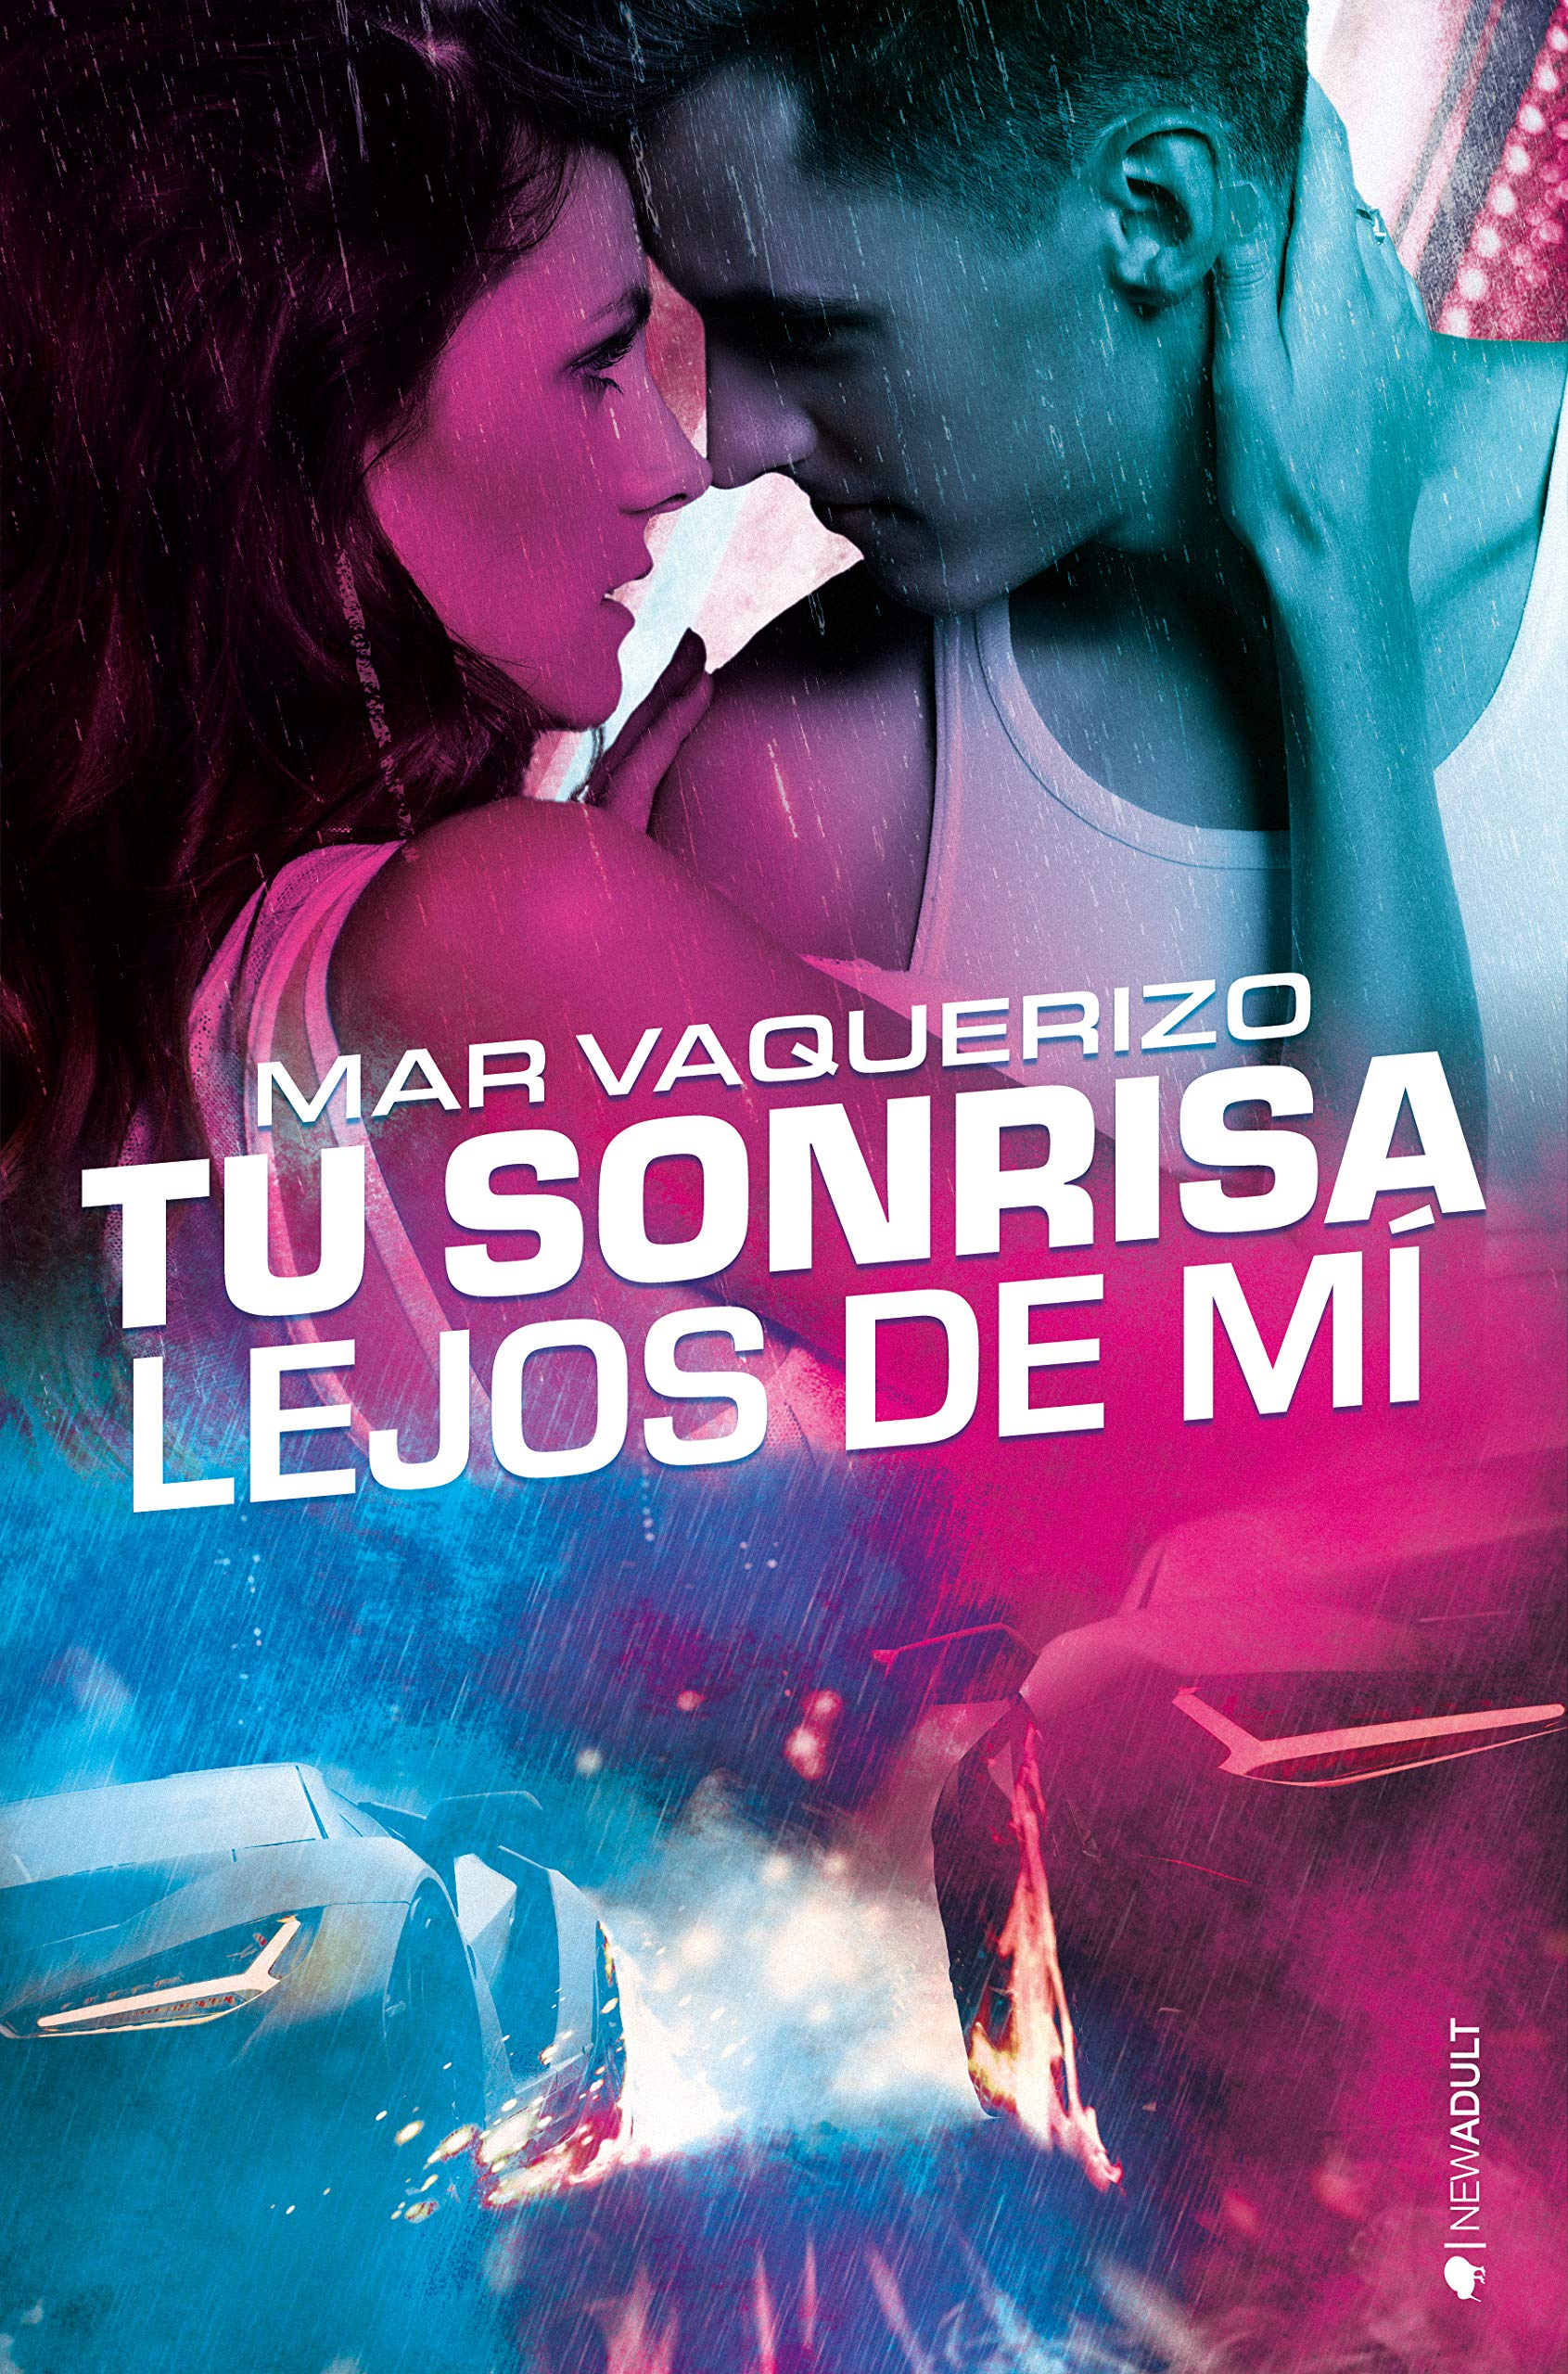 Tu sonrisa lejos de mi (NEW ADULT): Amazon.es: Vaquerizo, Mar: Libros